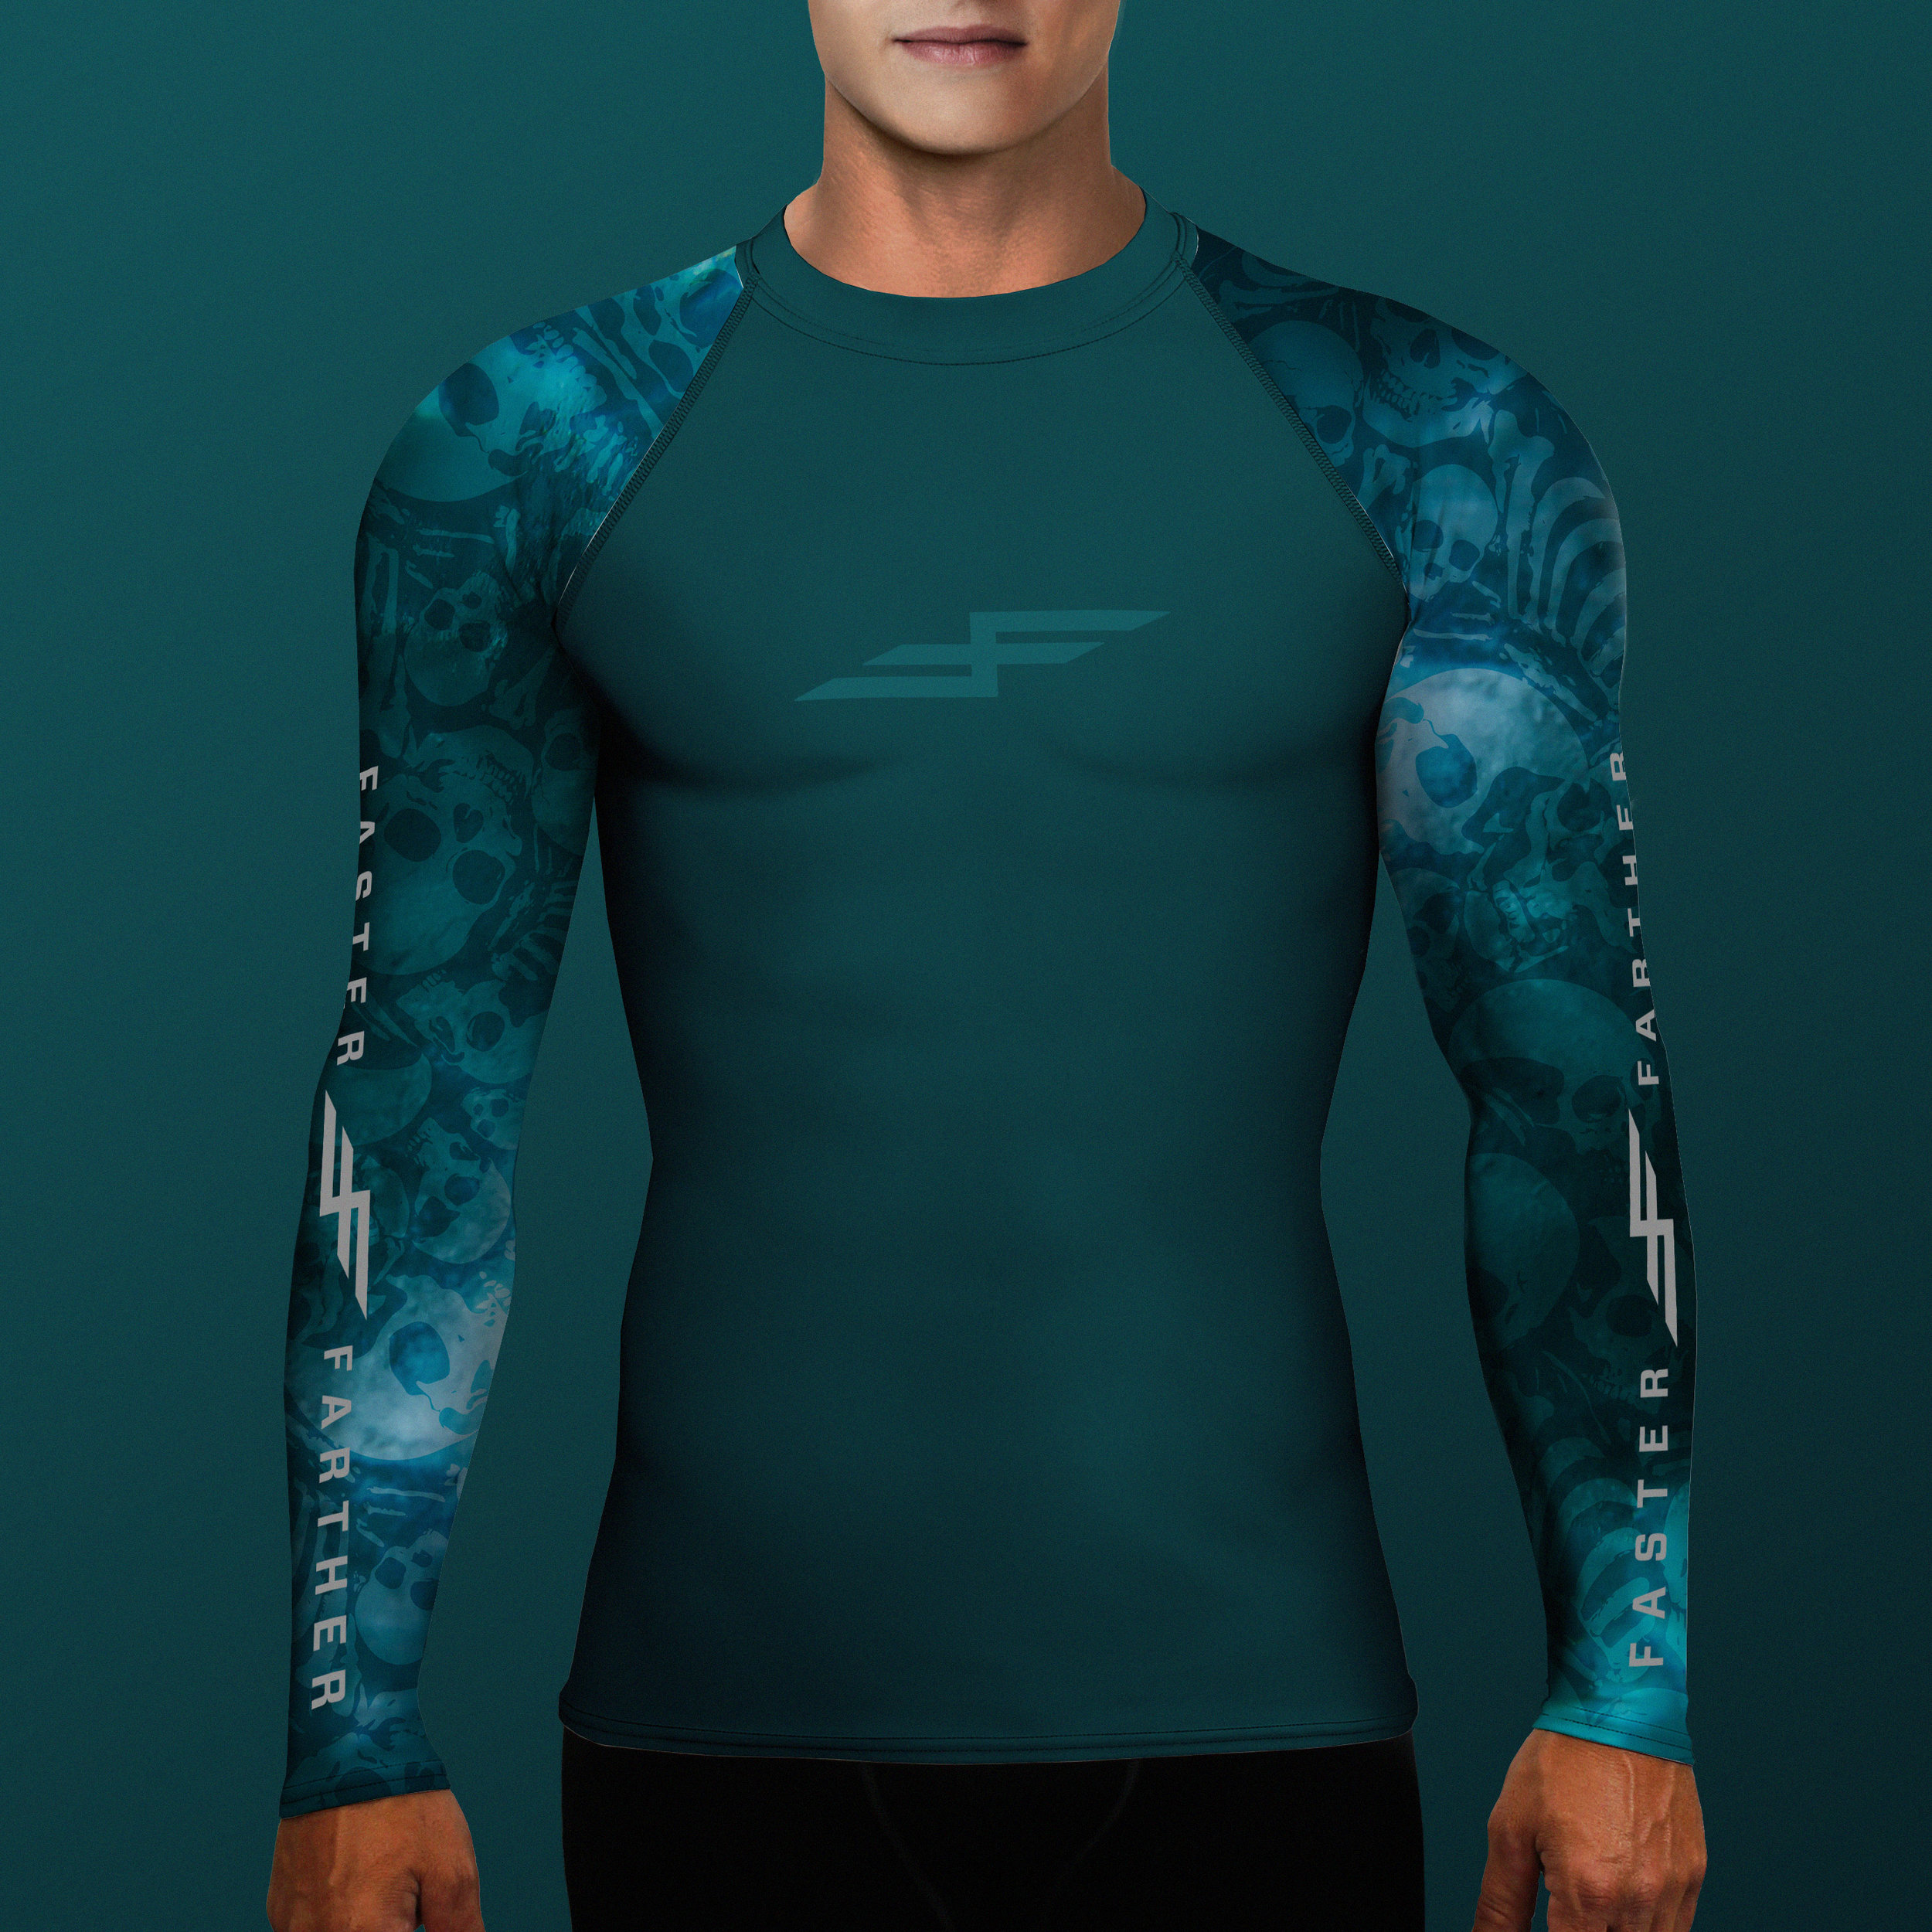 A1MT-009V1-Men'sRashGuard-BoneCollector-AquaShadow-HERO.jpg